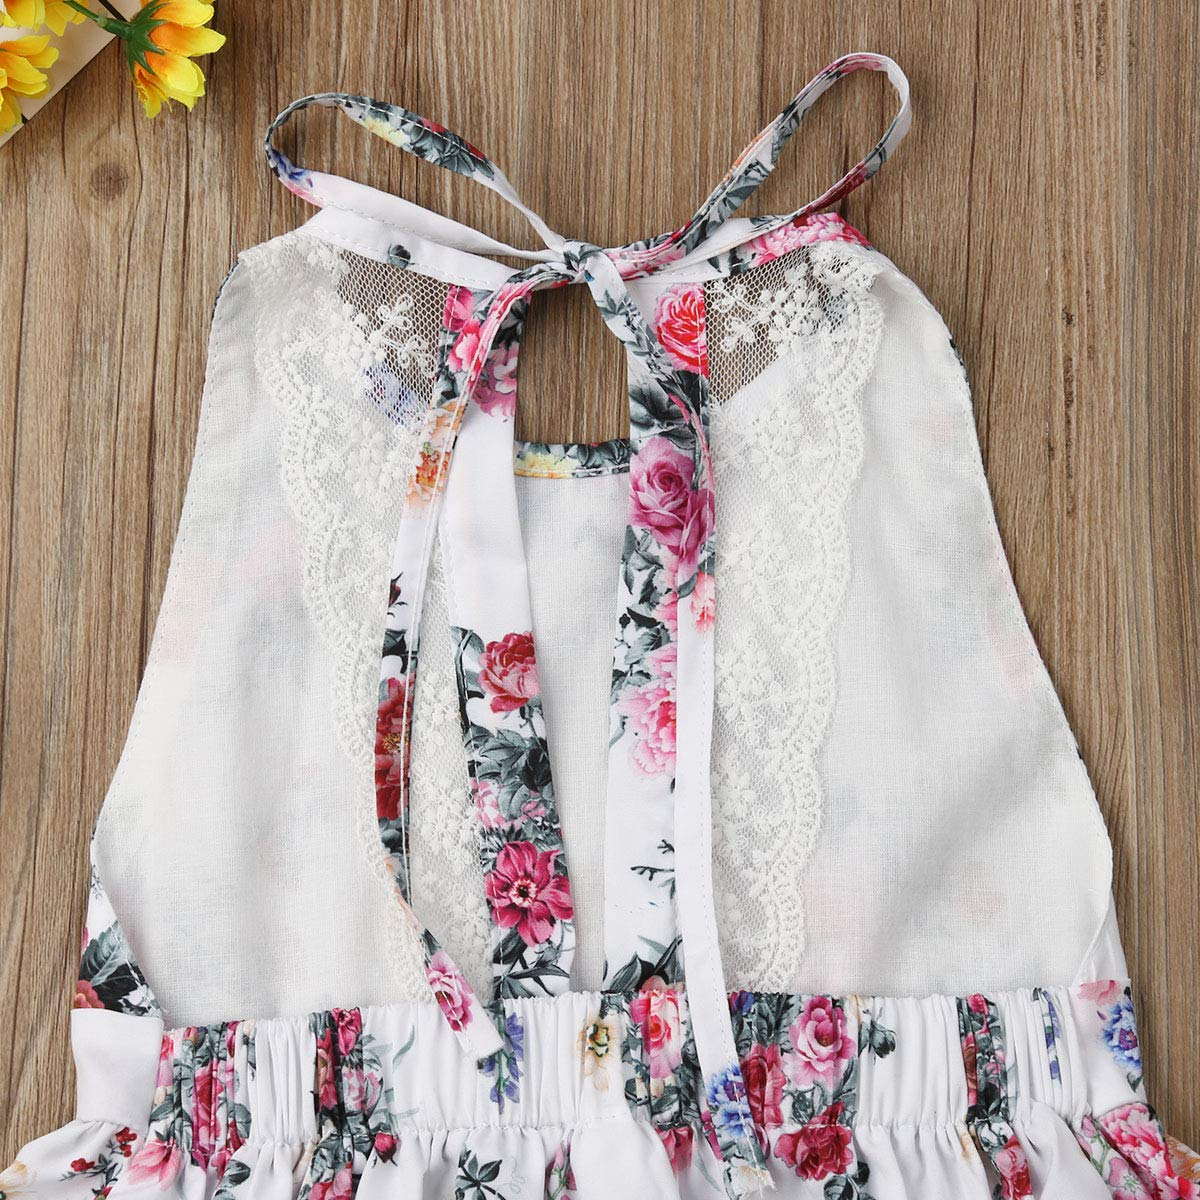 Toddler Girls Sleeveless Sundress,One Piece Floral Print Backless Lace Princess Party Dress Outfits Summer Clothes